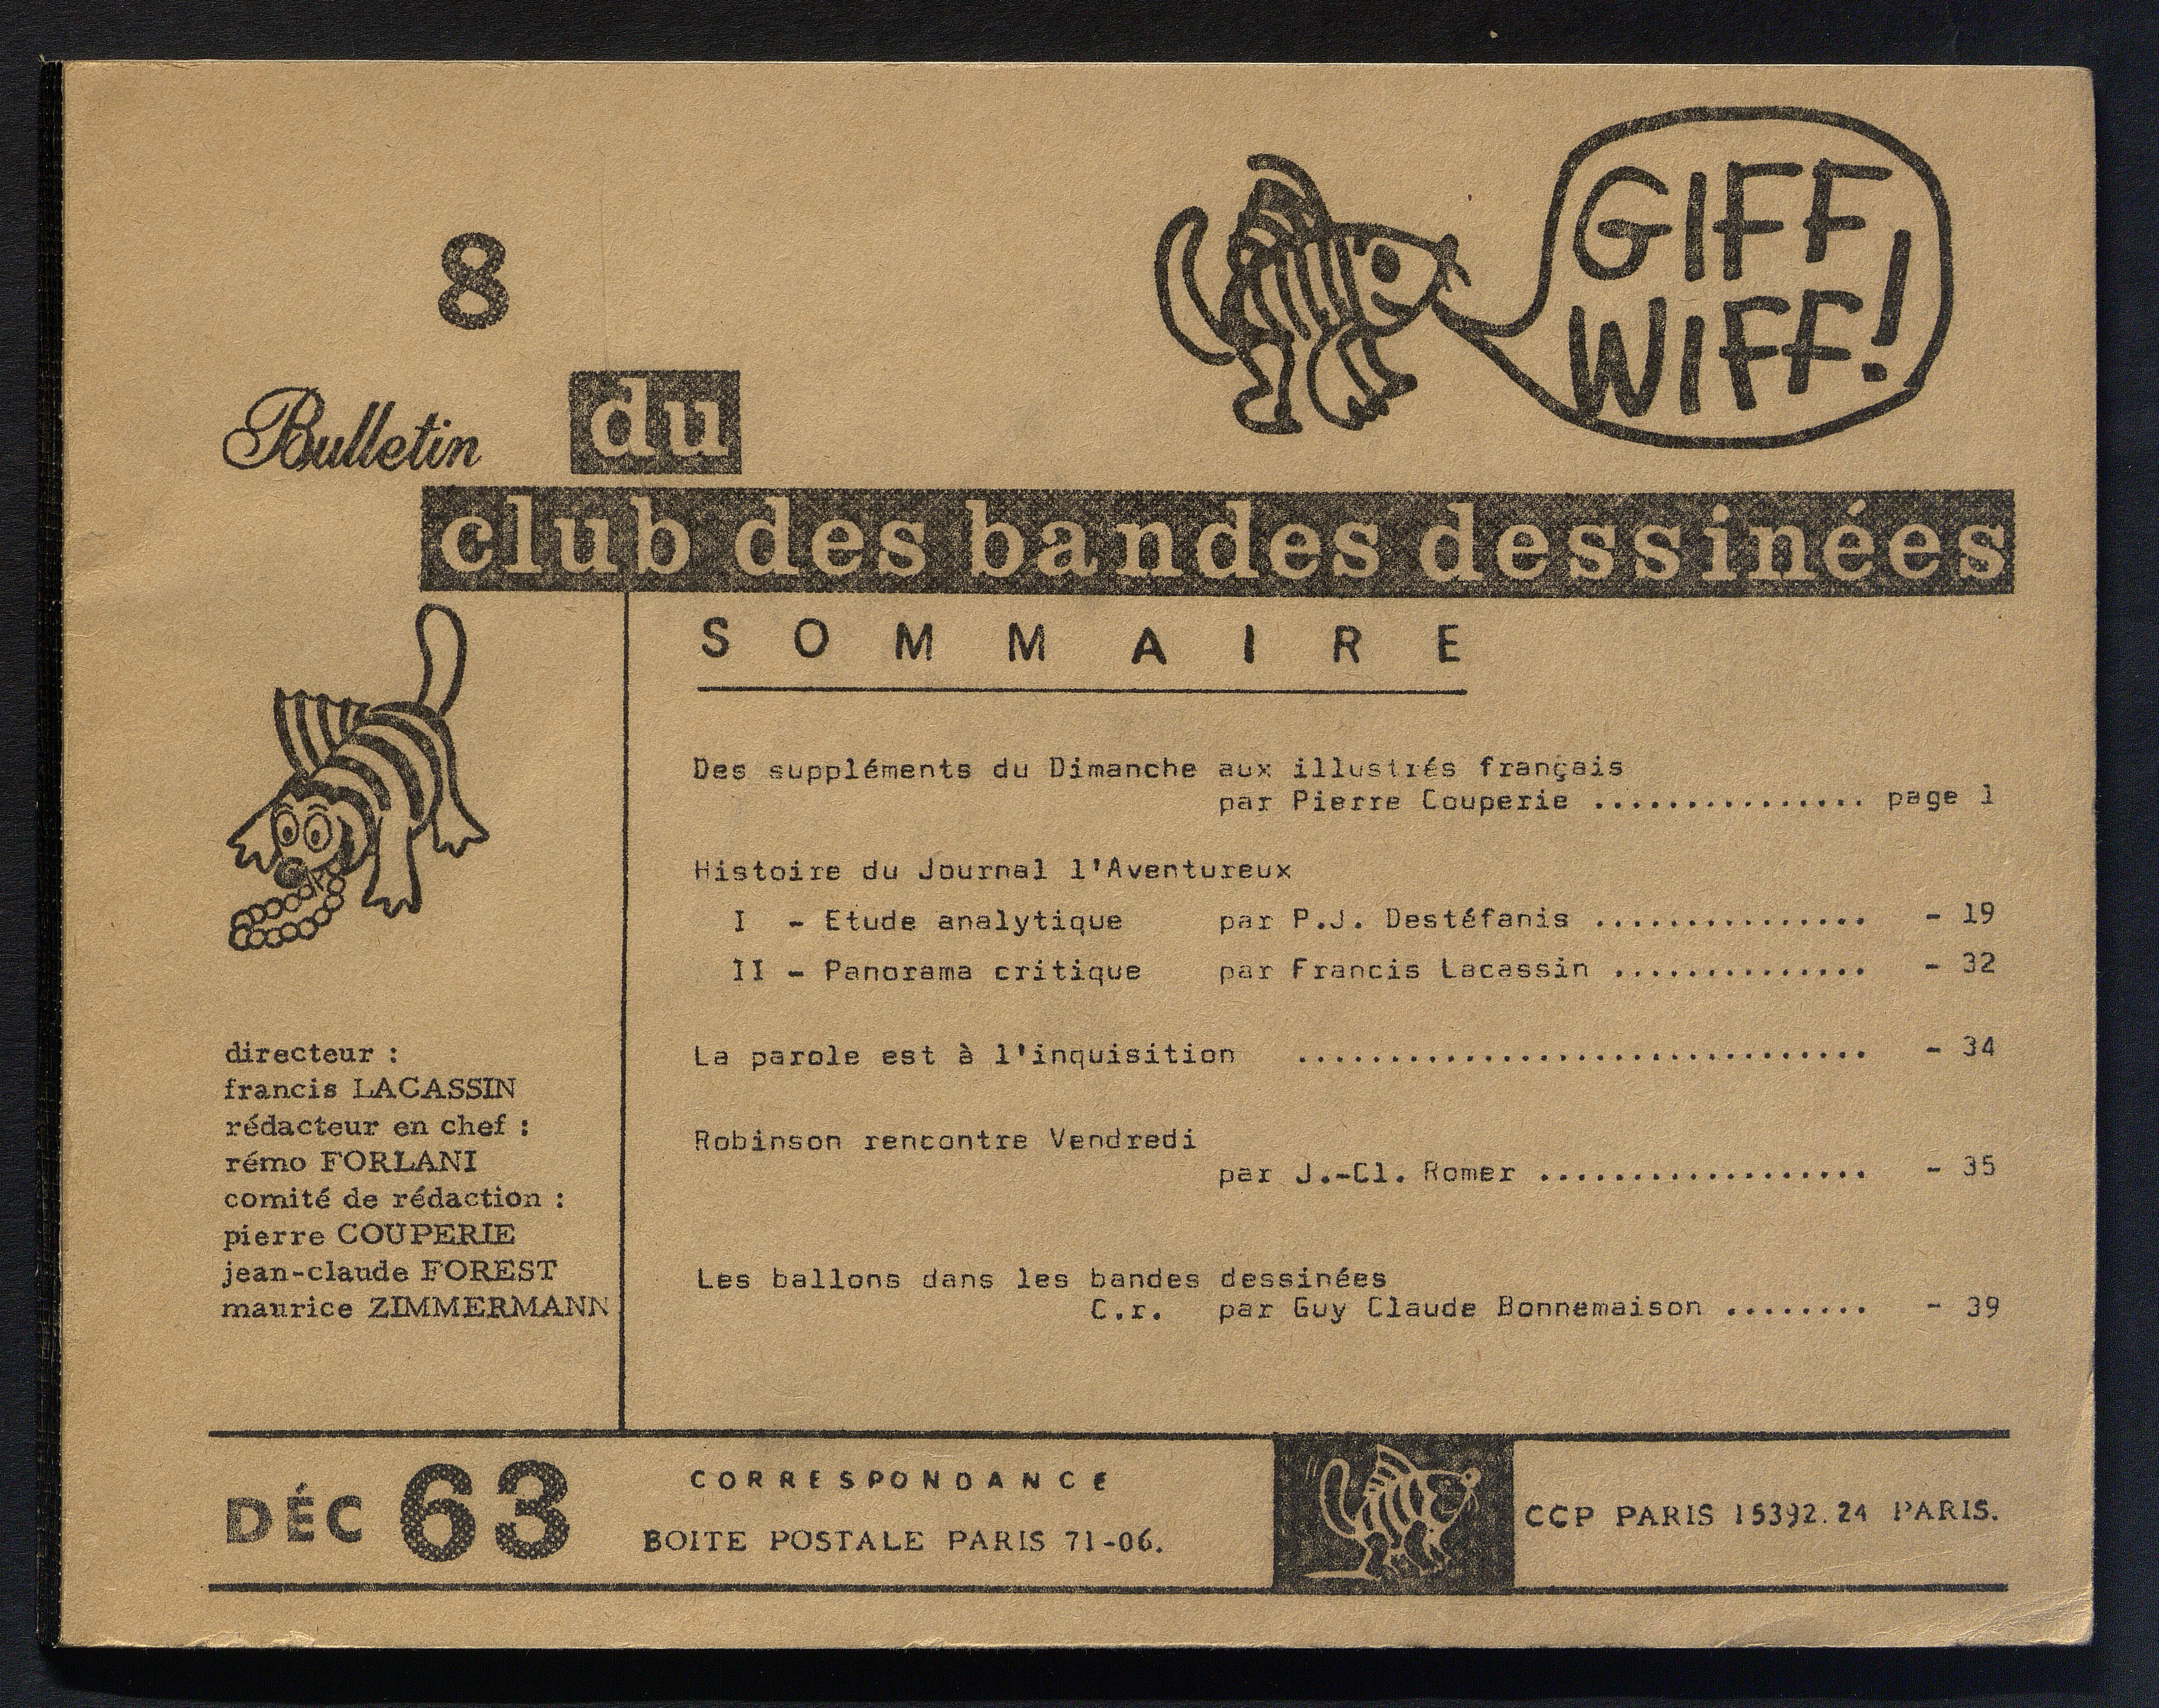 GIFF-WIFF, N°8, décembre 1963